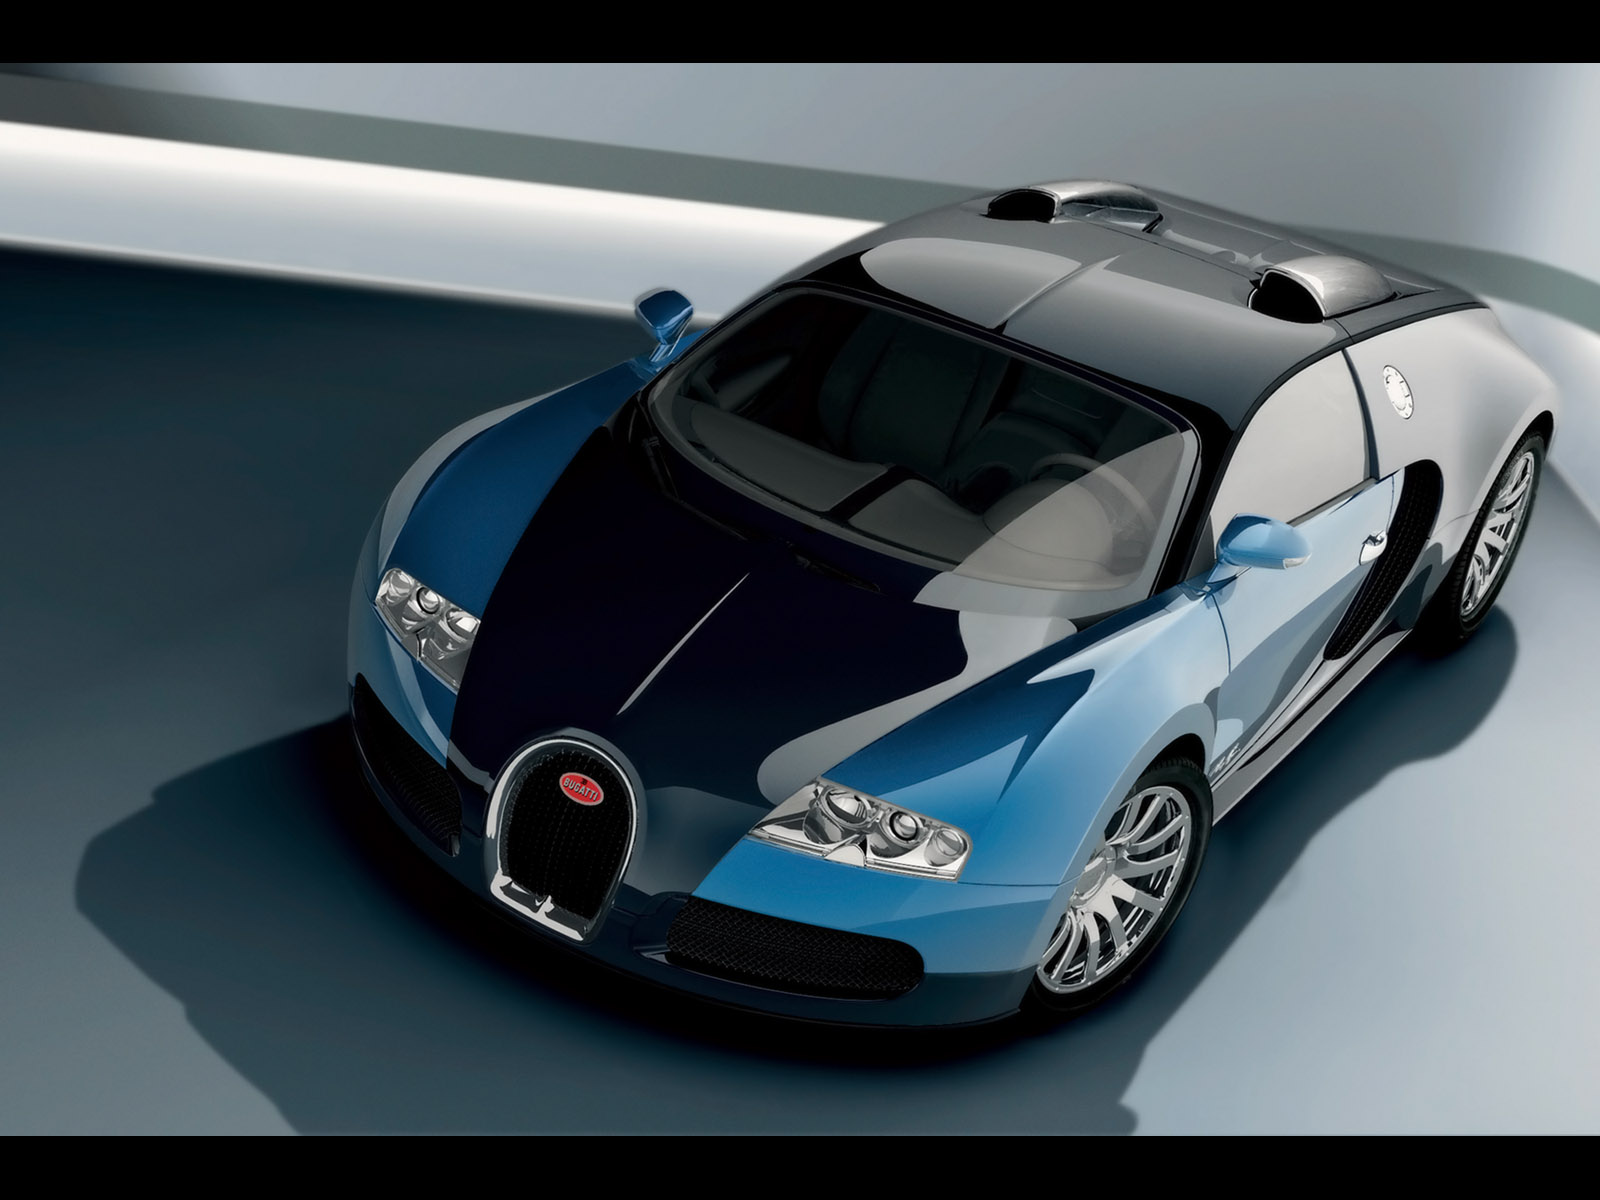 Why Bugatti Veyron Is The Best Car In The World?